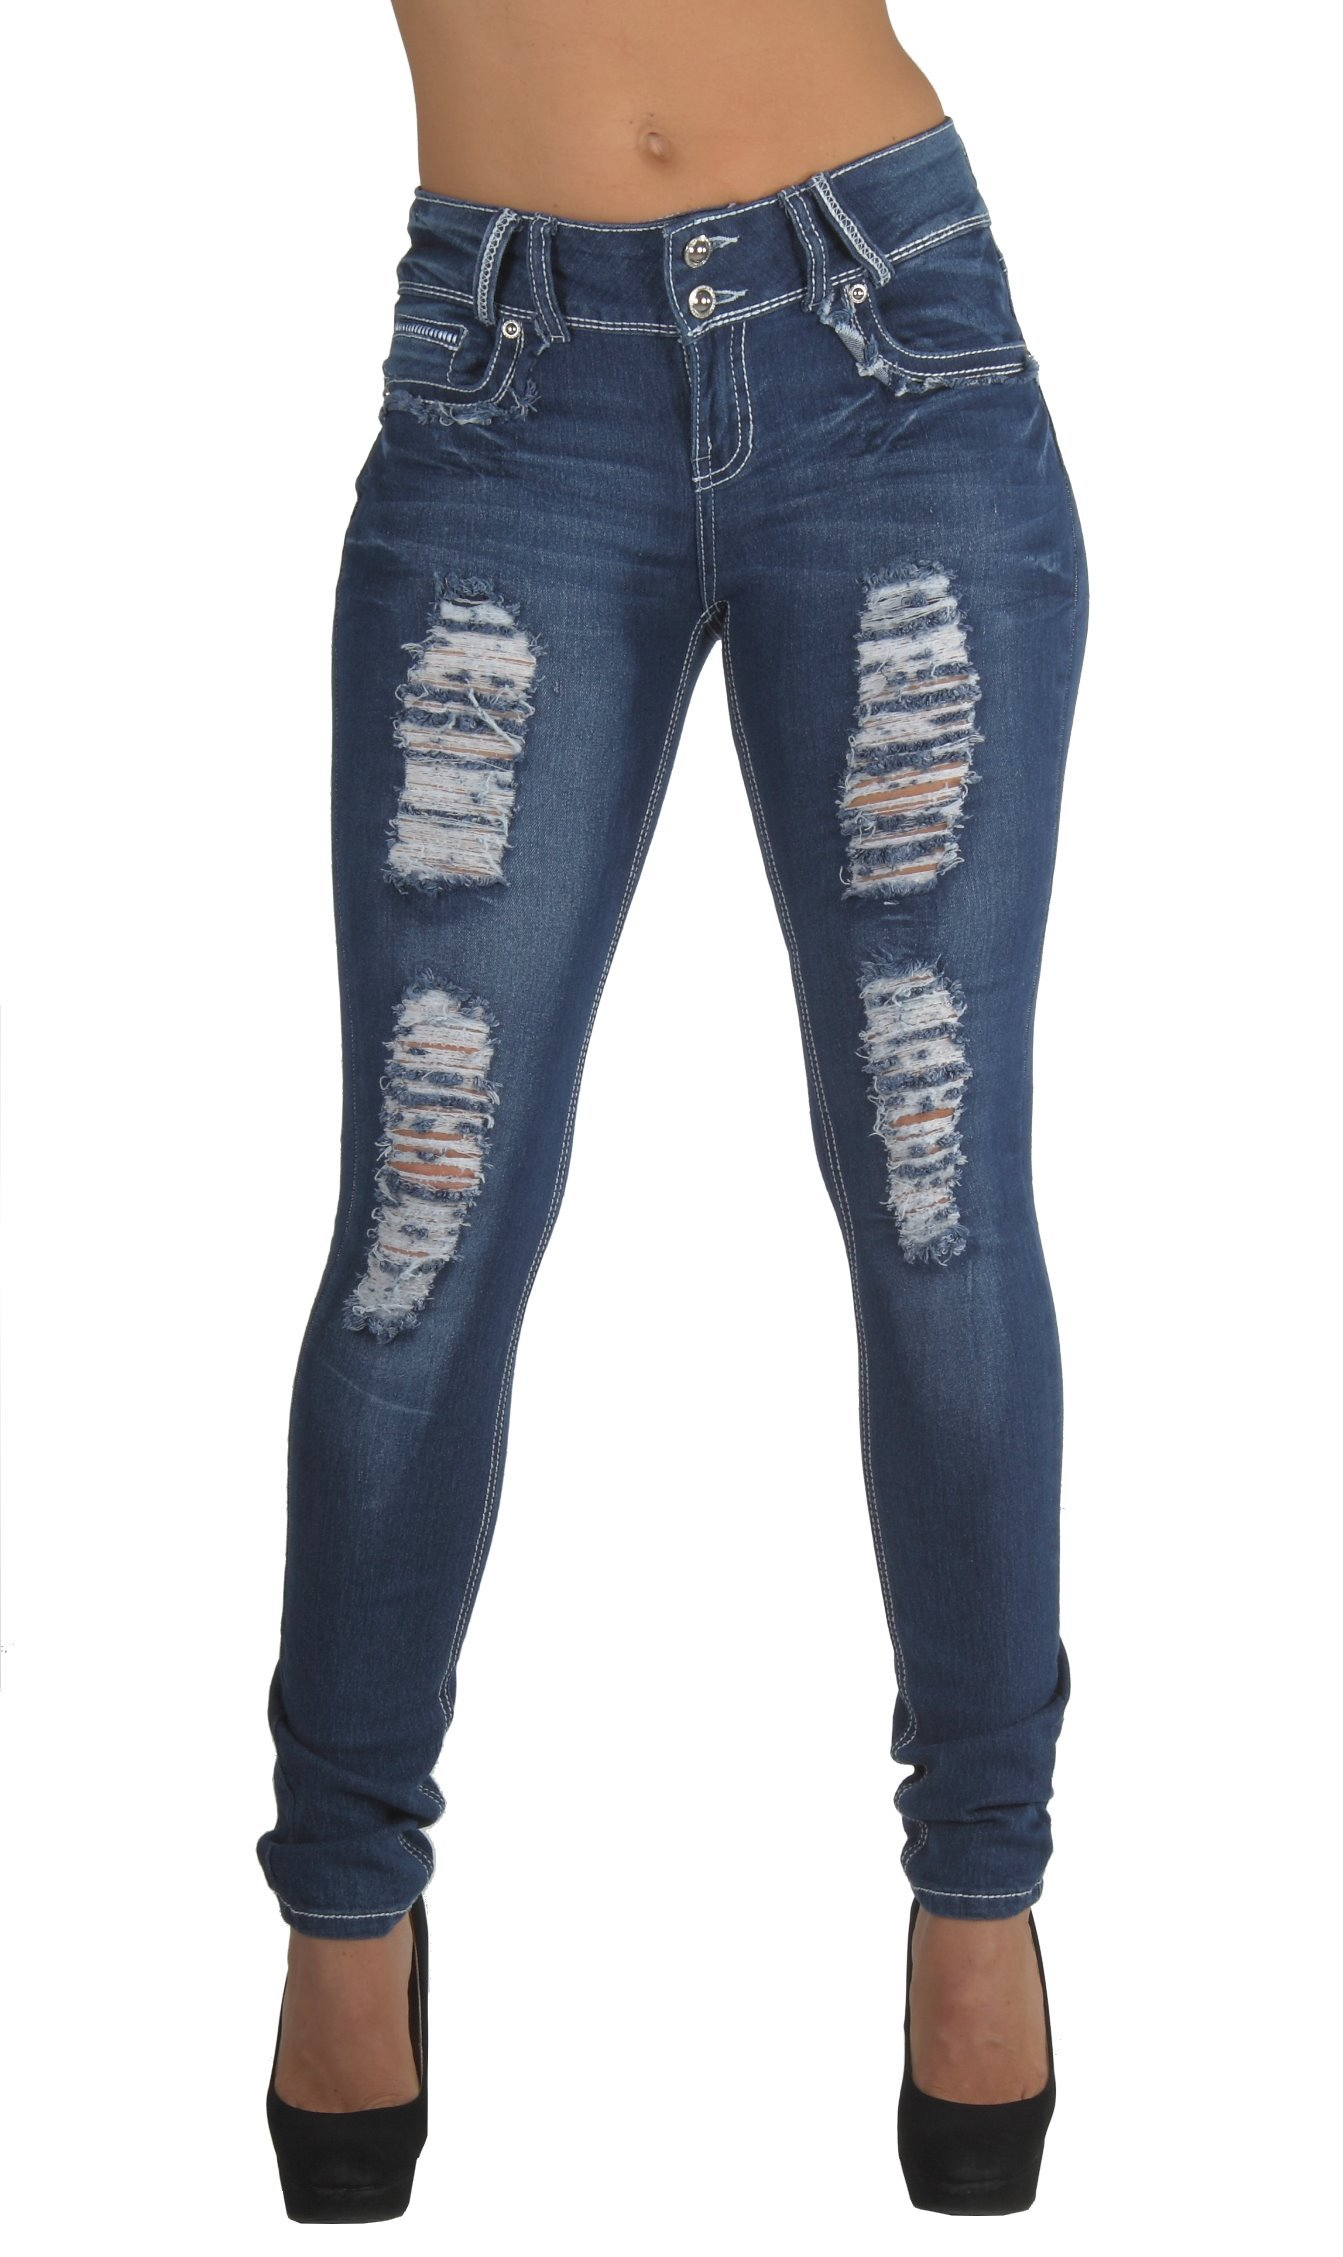 Style N596R-SK– Classic Design, Ripped Distressed, Destroyed Skinny Jeans in Washed Blue Size 5